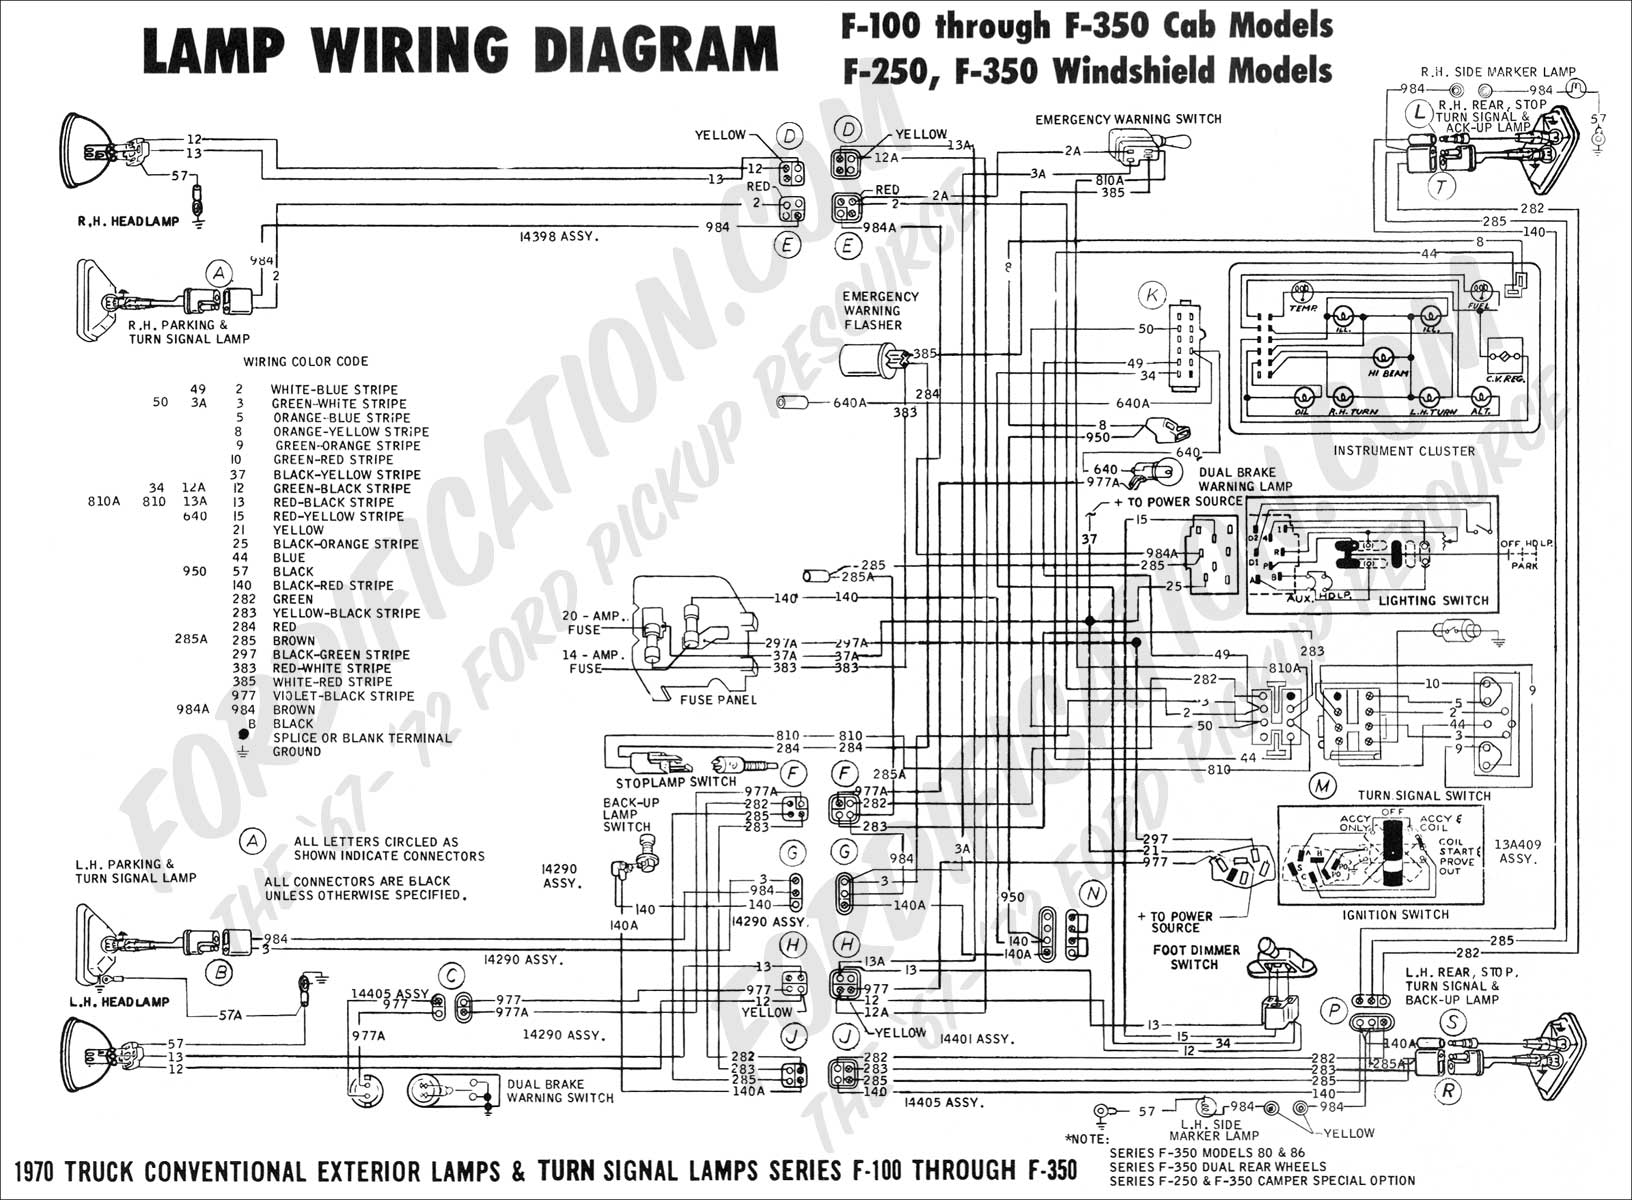 wiring diagram_70ext lights01 1986 ford f250 wiring diagram ford truck fuel system diagram ford f250 wiring diagram online at nearapp.co